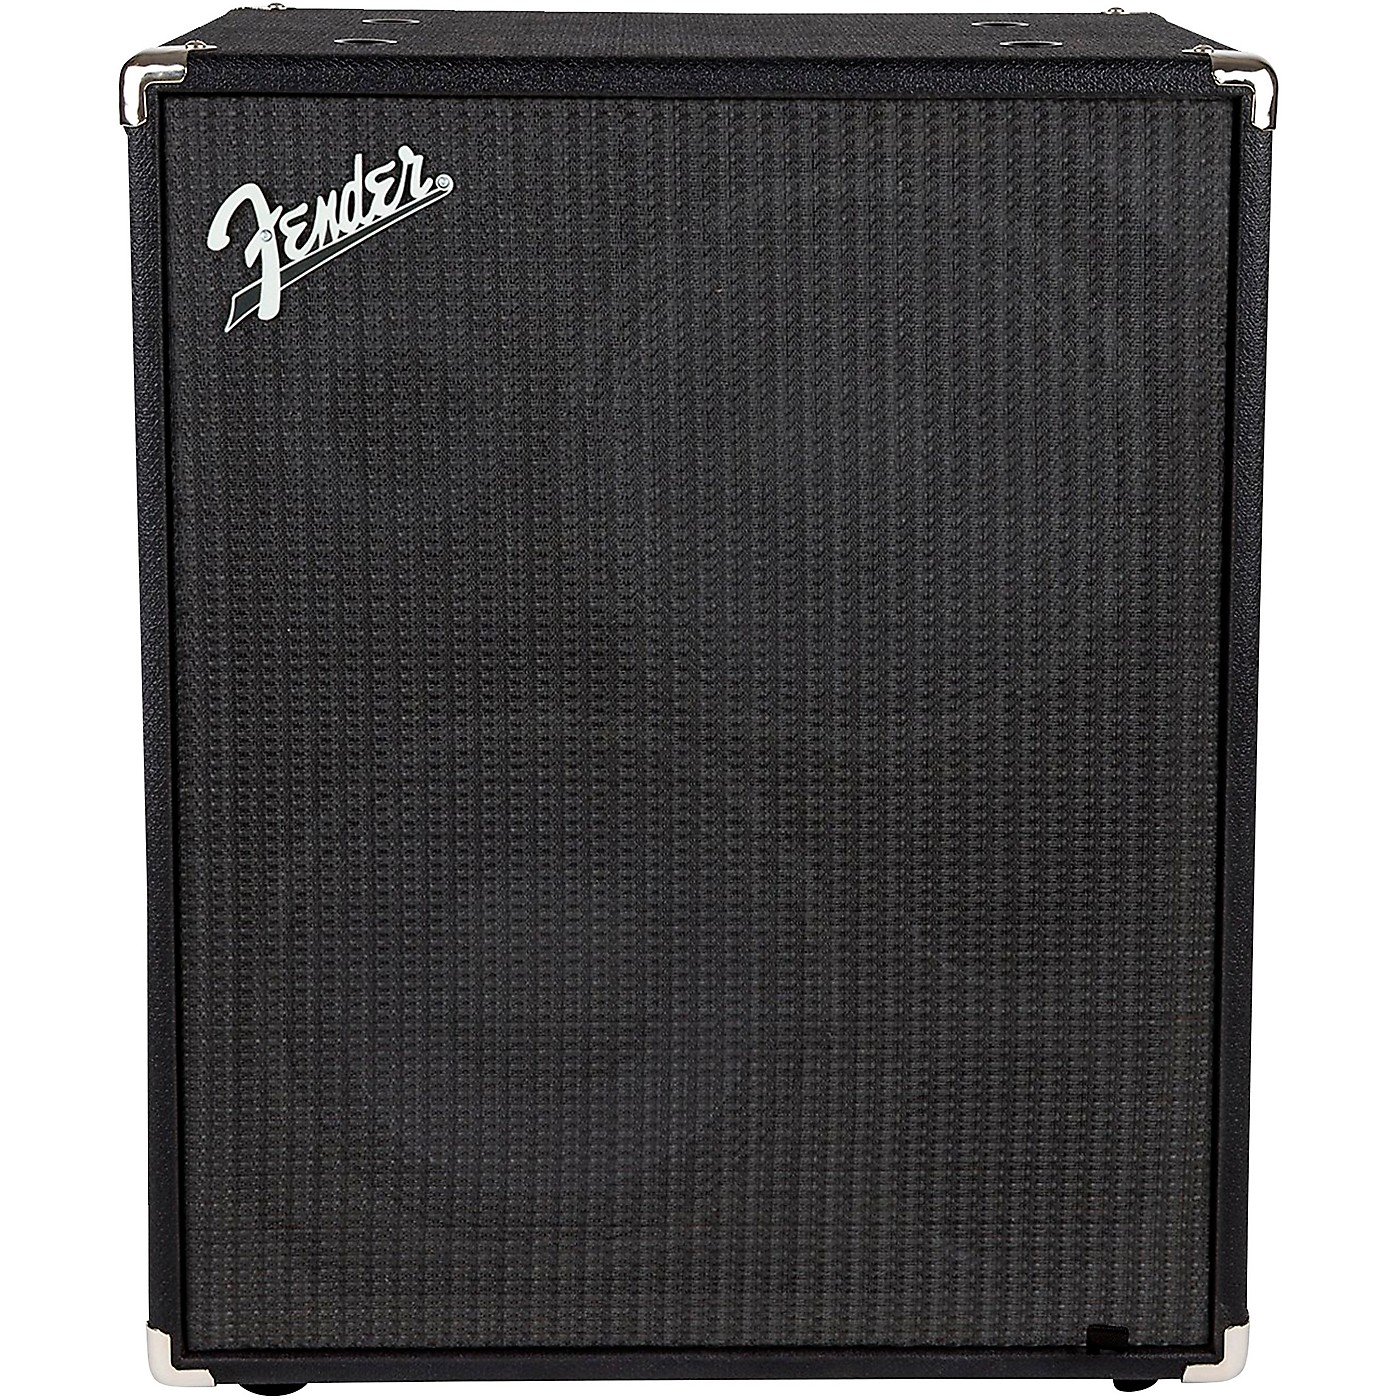 Fender Rumble 210 V3 700W 2x10 Bass Speaker Cabinet thumbnail